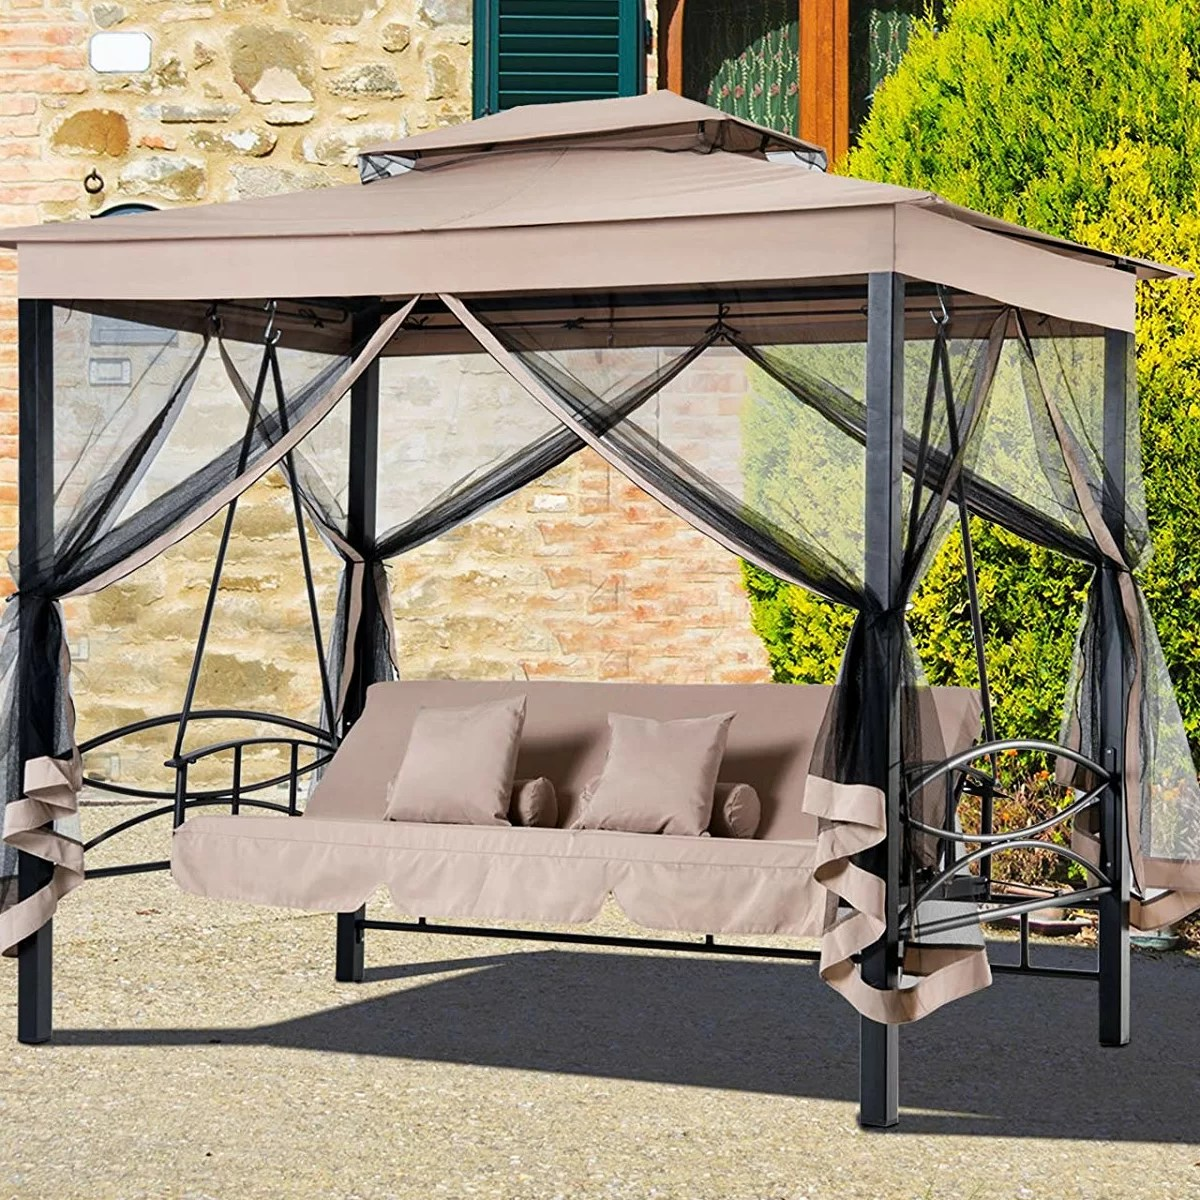 Swinging Chair Outdoor Kenyatta Outdoor Patio Daybed Canopy Gazebo Swing With Mesh Walls